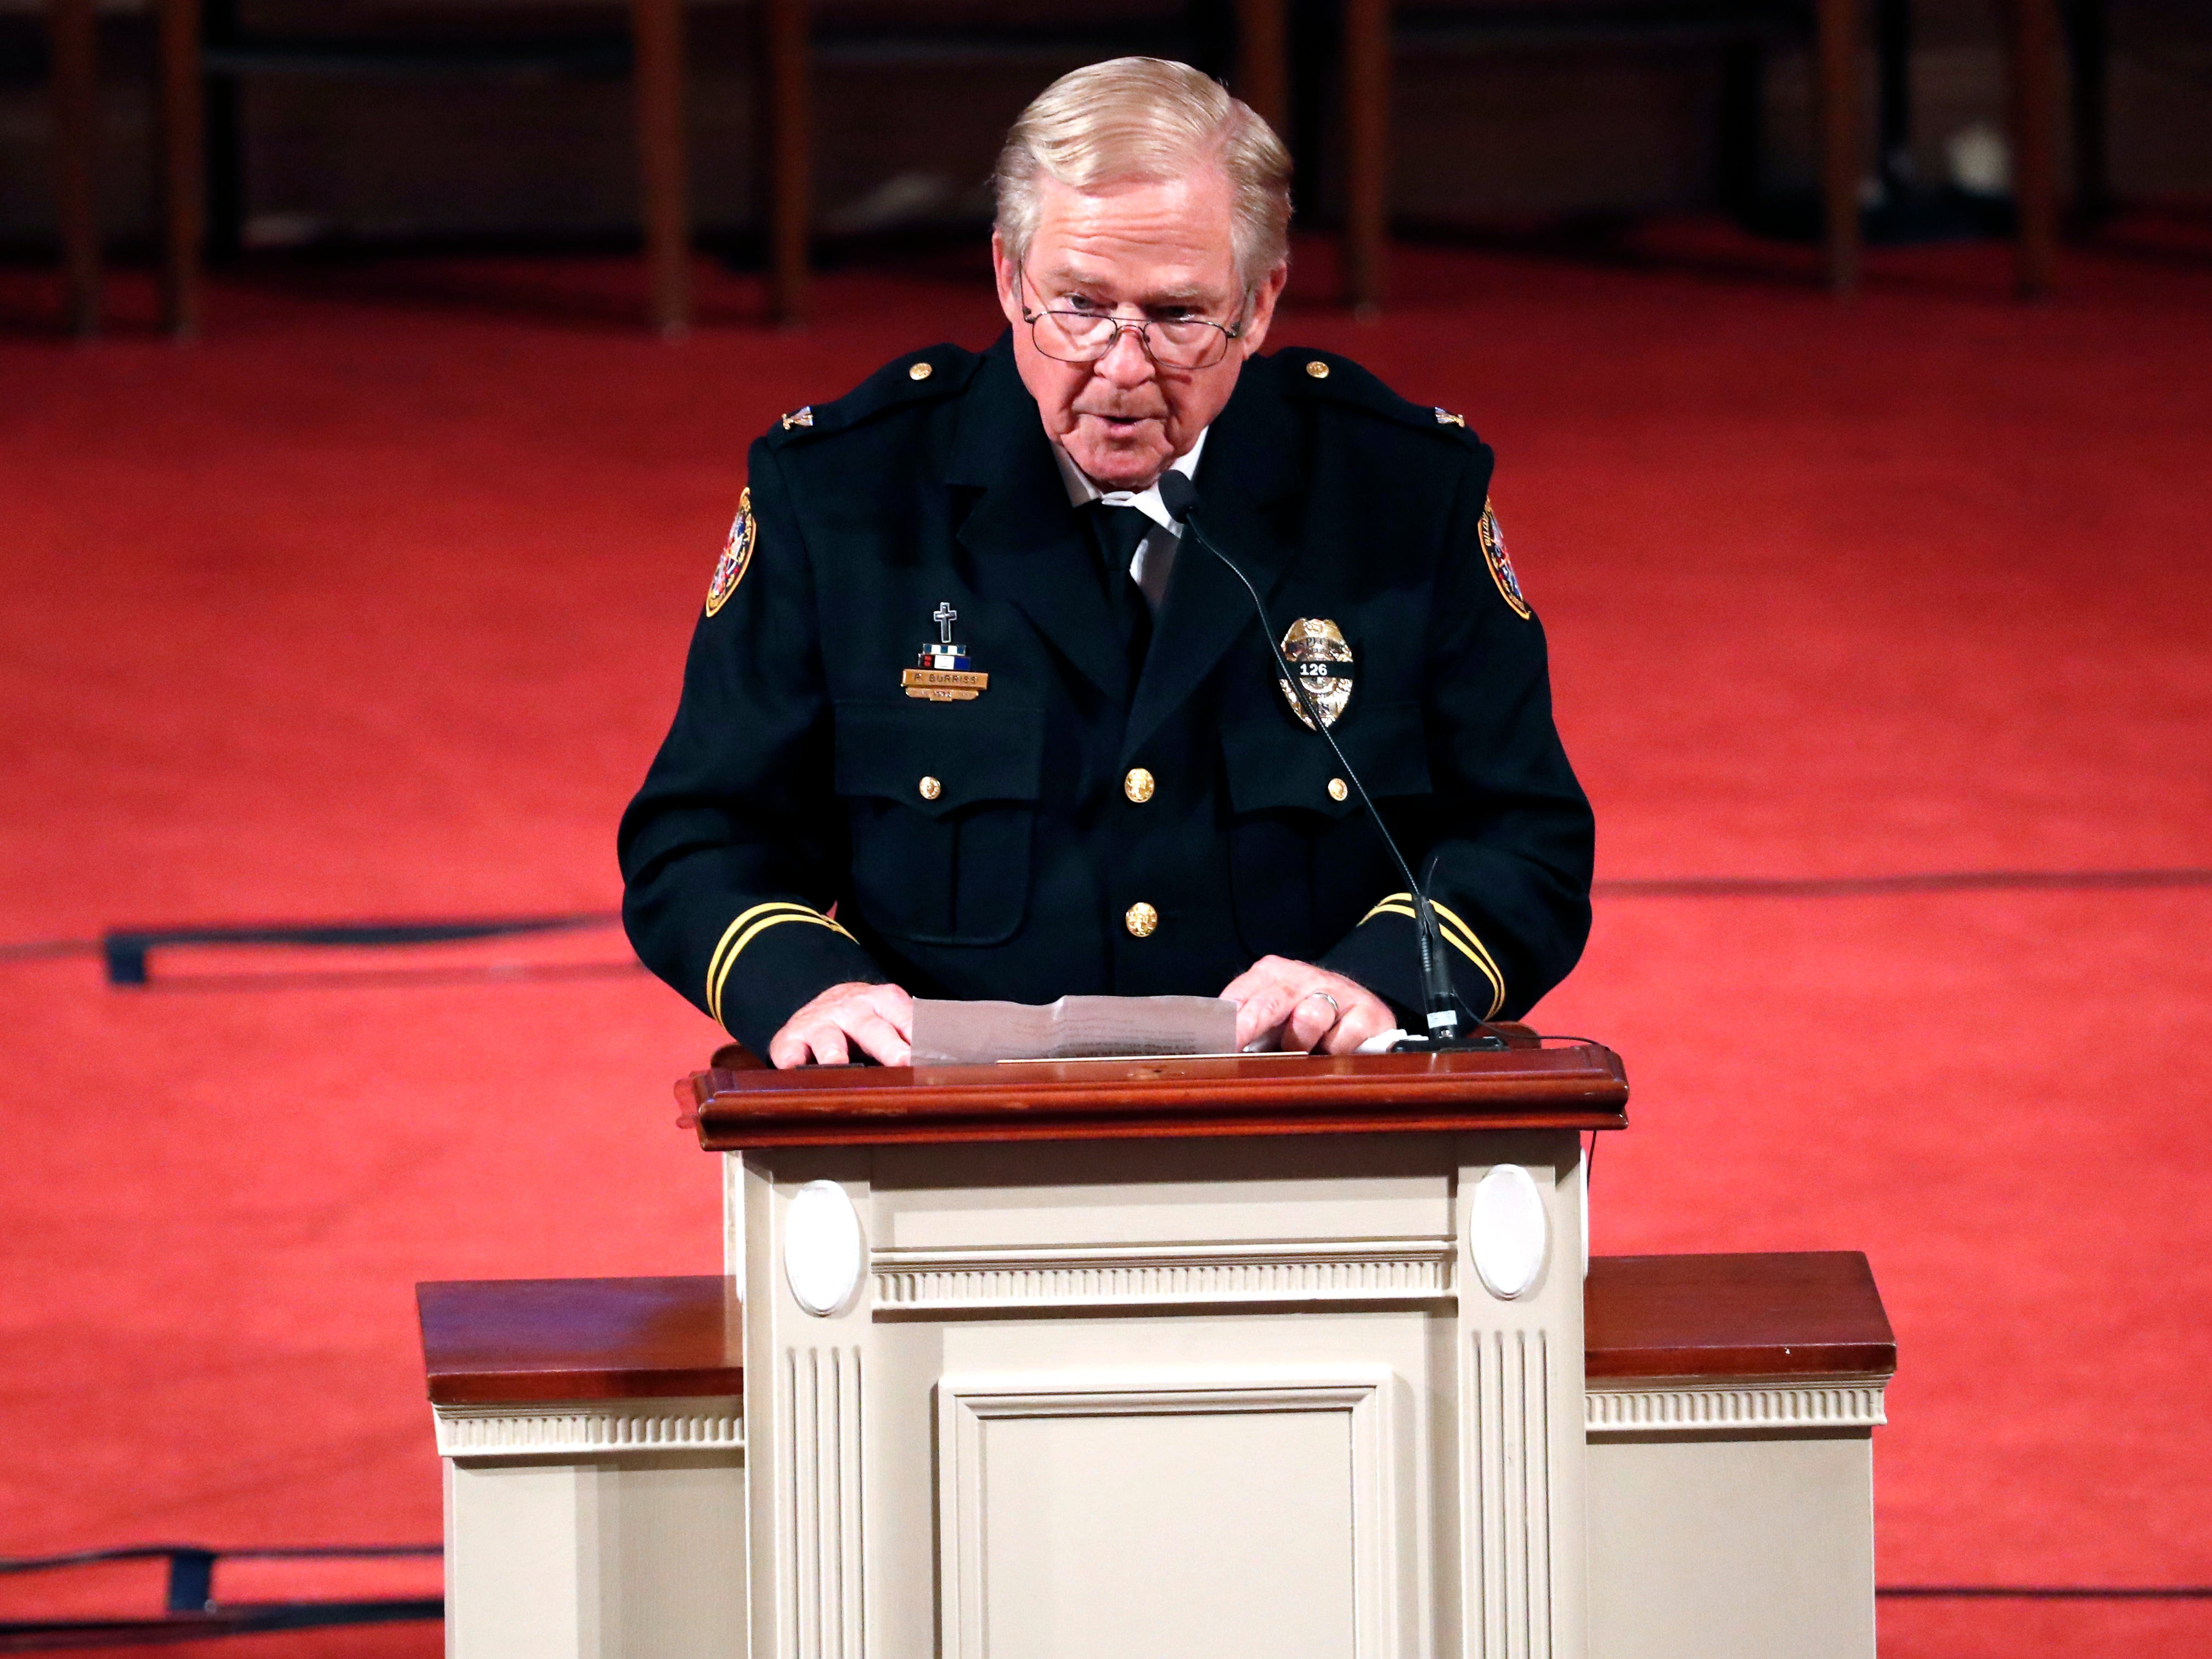 Biloxi, Miss., Police Department Chaplain Robert Burris, delivers a closing prayer for the late Biloxi police officer Robert S. McKeithen and his family at his funeral in the First Baptist Church of Biloxi, Monday, May 13, 2019.